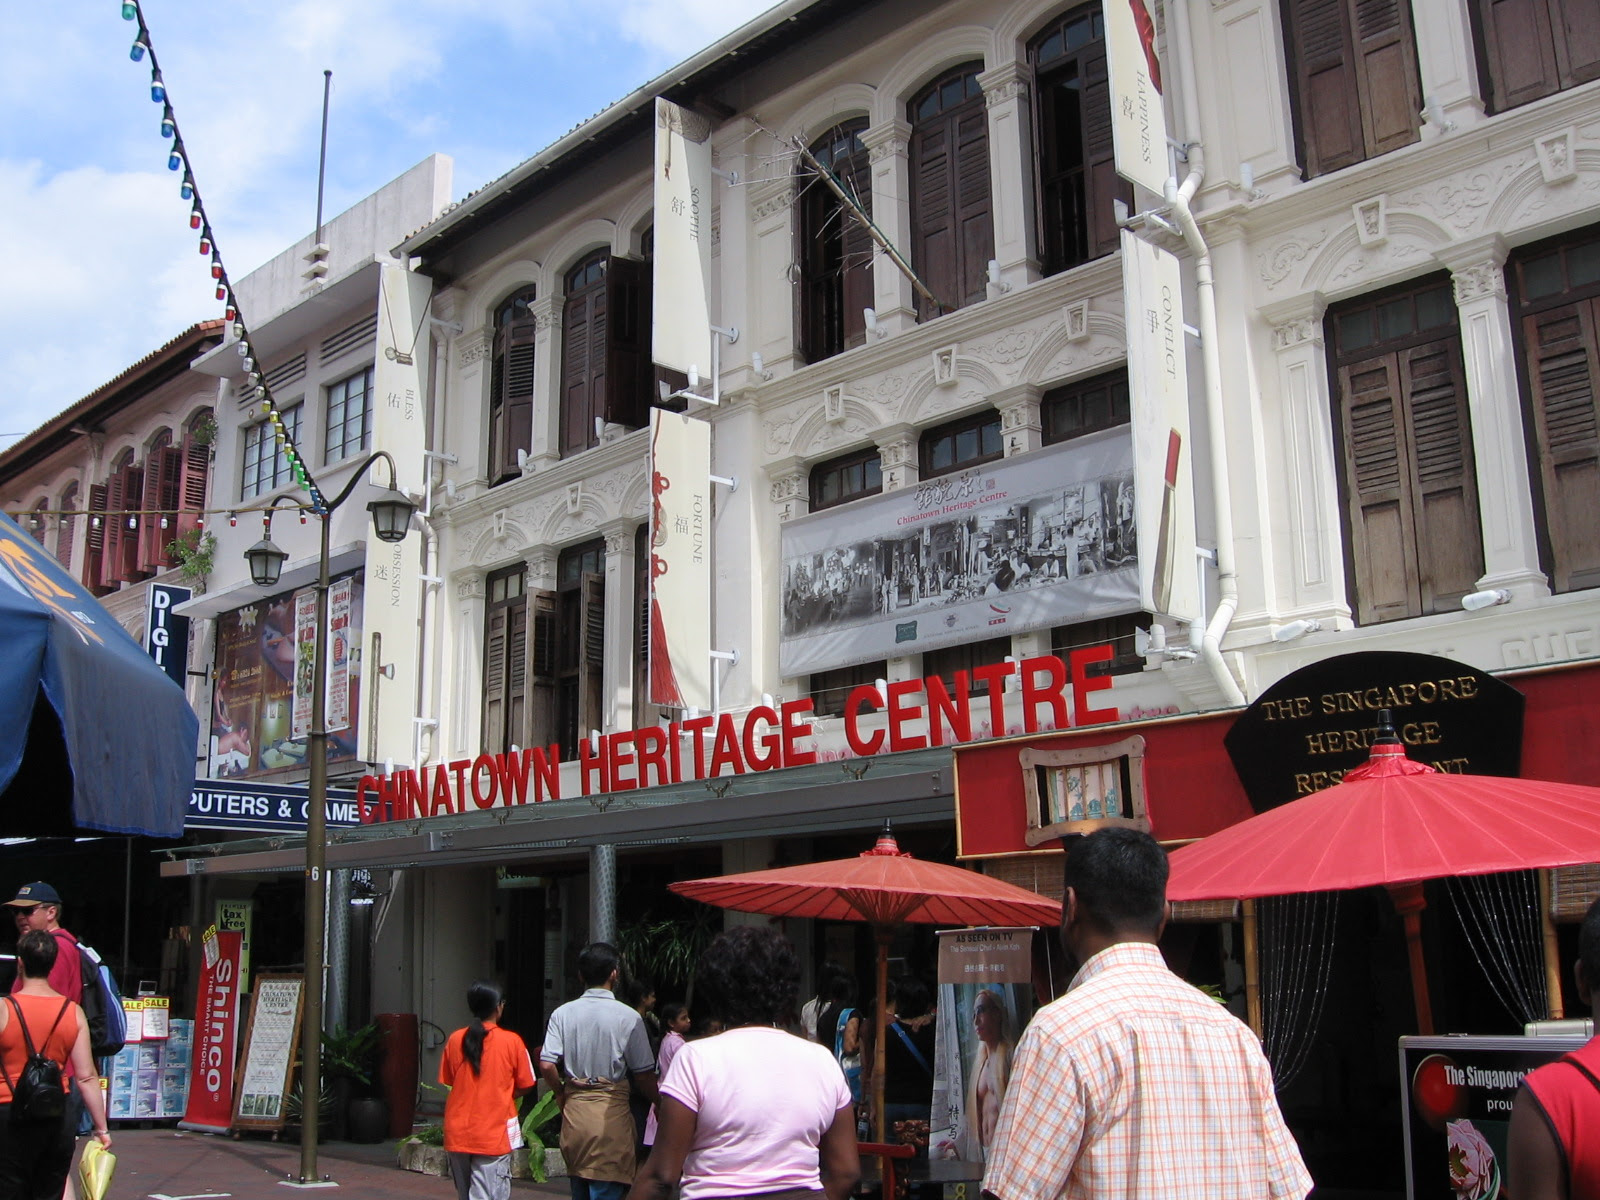 Chinatown Heritage Centre Singapore Map,Tourist Attractions in Singapore,Map of Chinatown Heritage Centre Singapore,Things to do in Singapore,Chinatown Heritage Centre Singapore accommodation destinations attractions hotels map reviews photos pictures